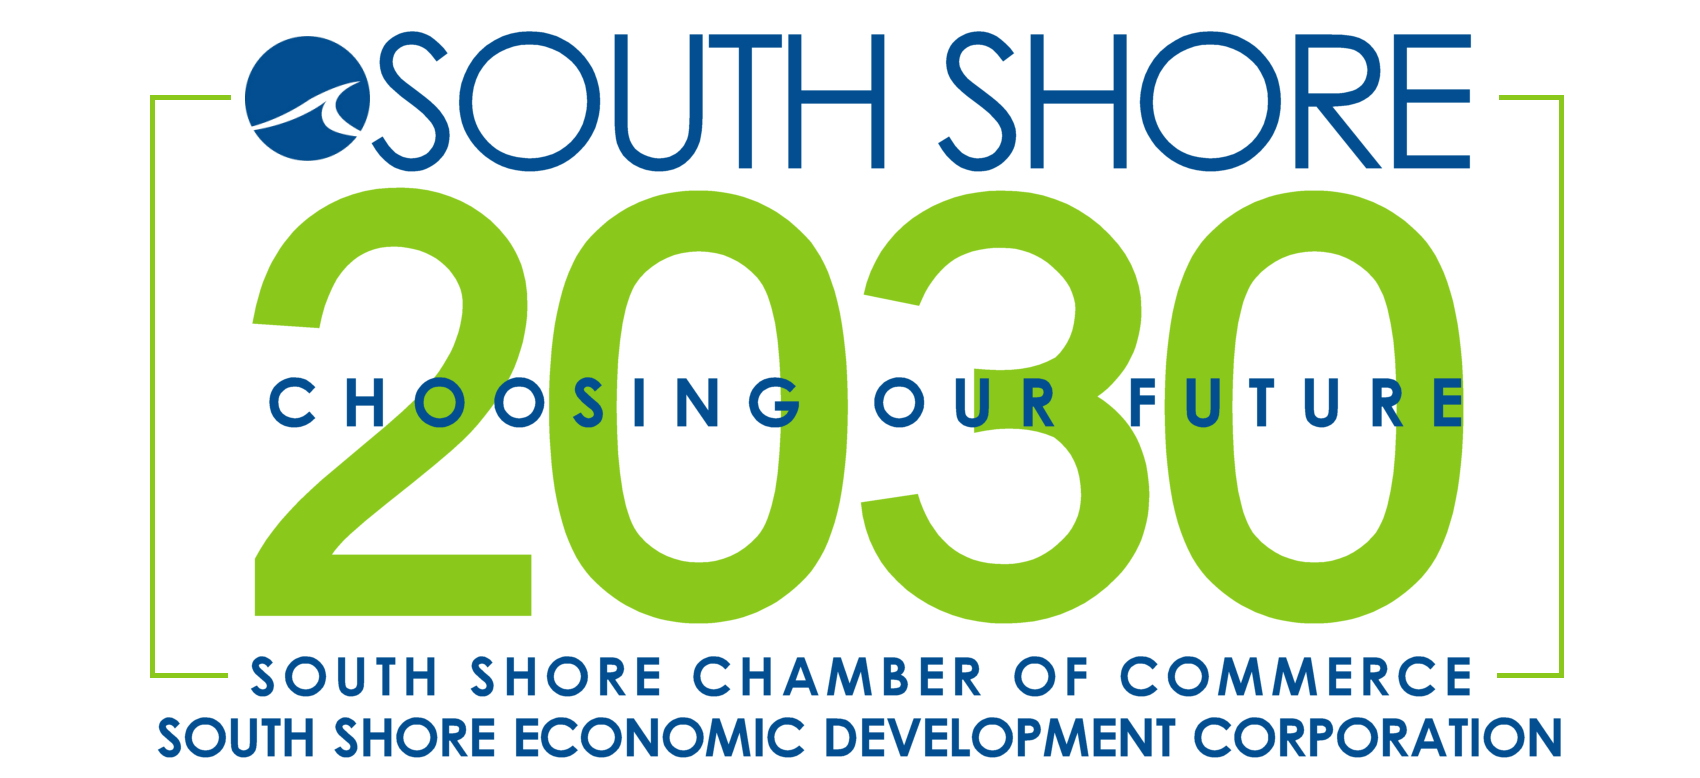 2030Logo-SSCCEDC-FINAL.jpg